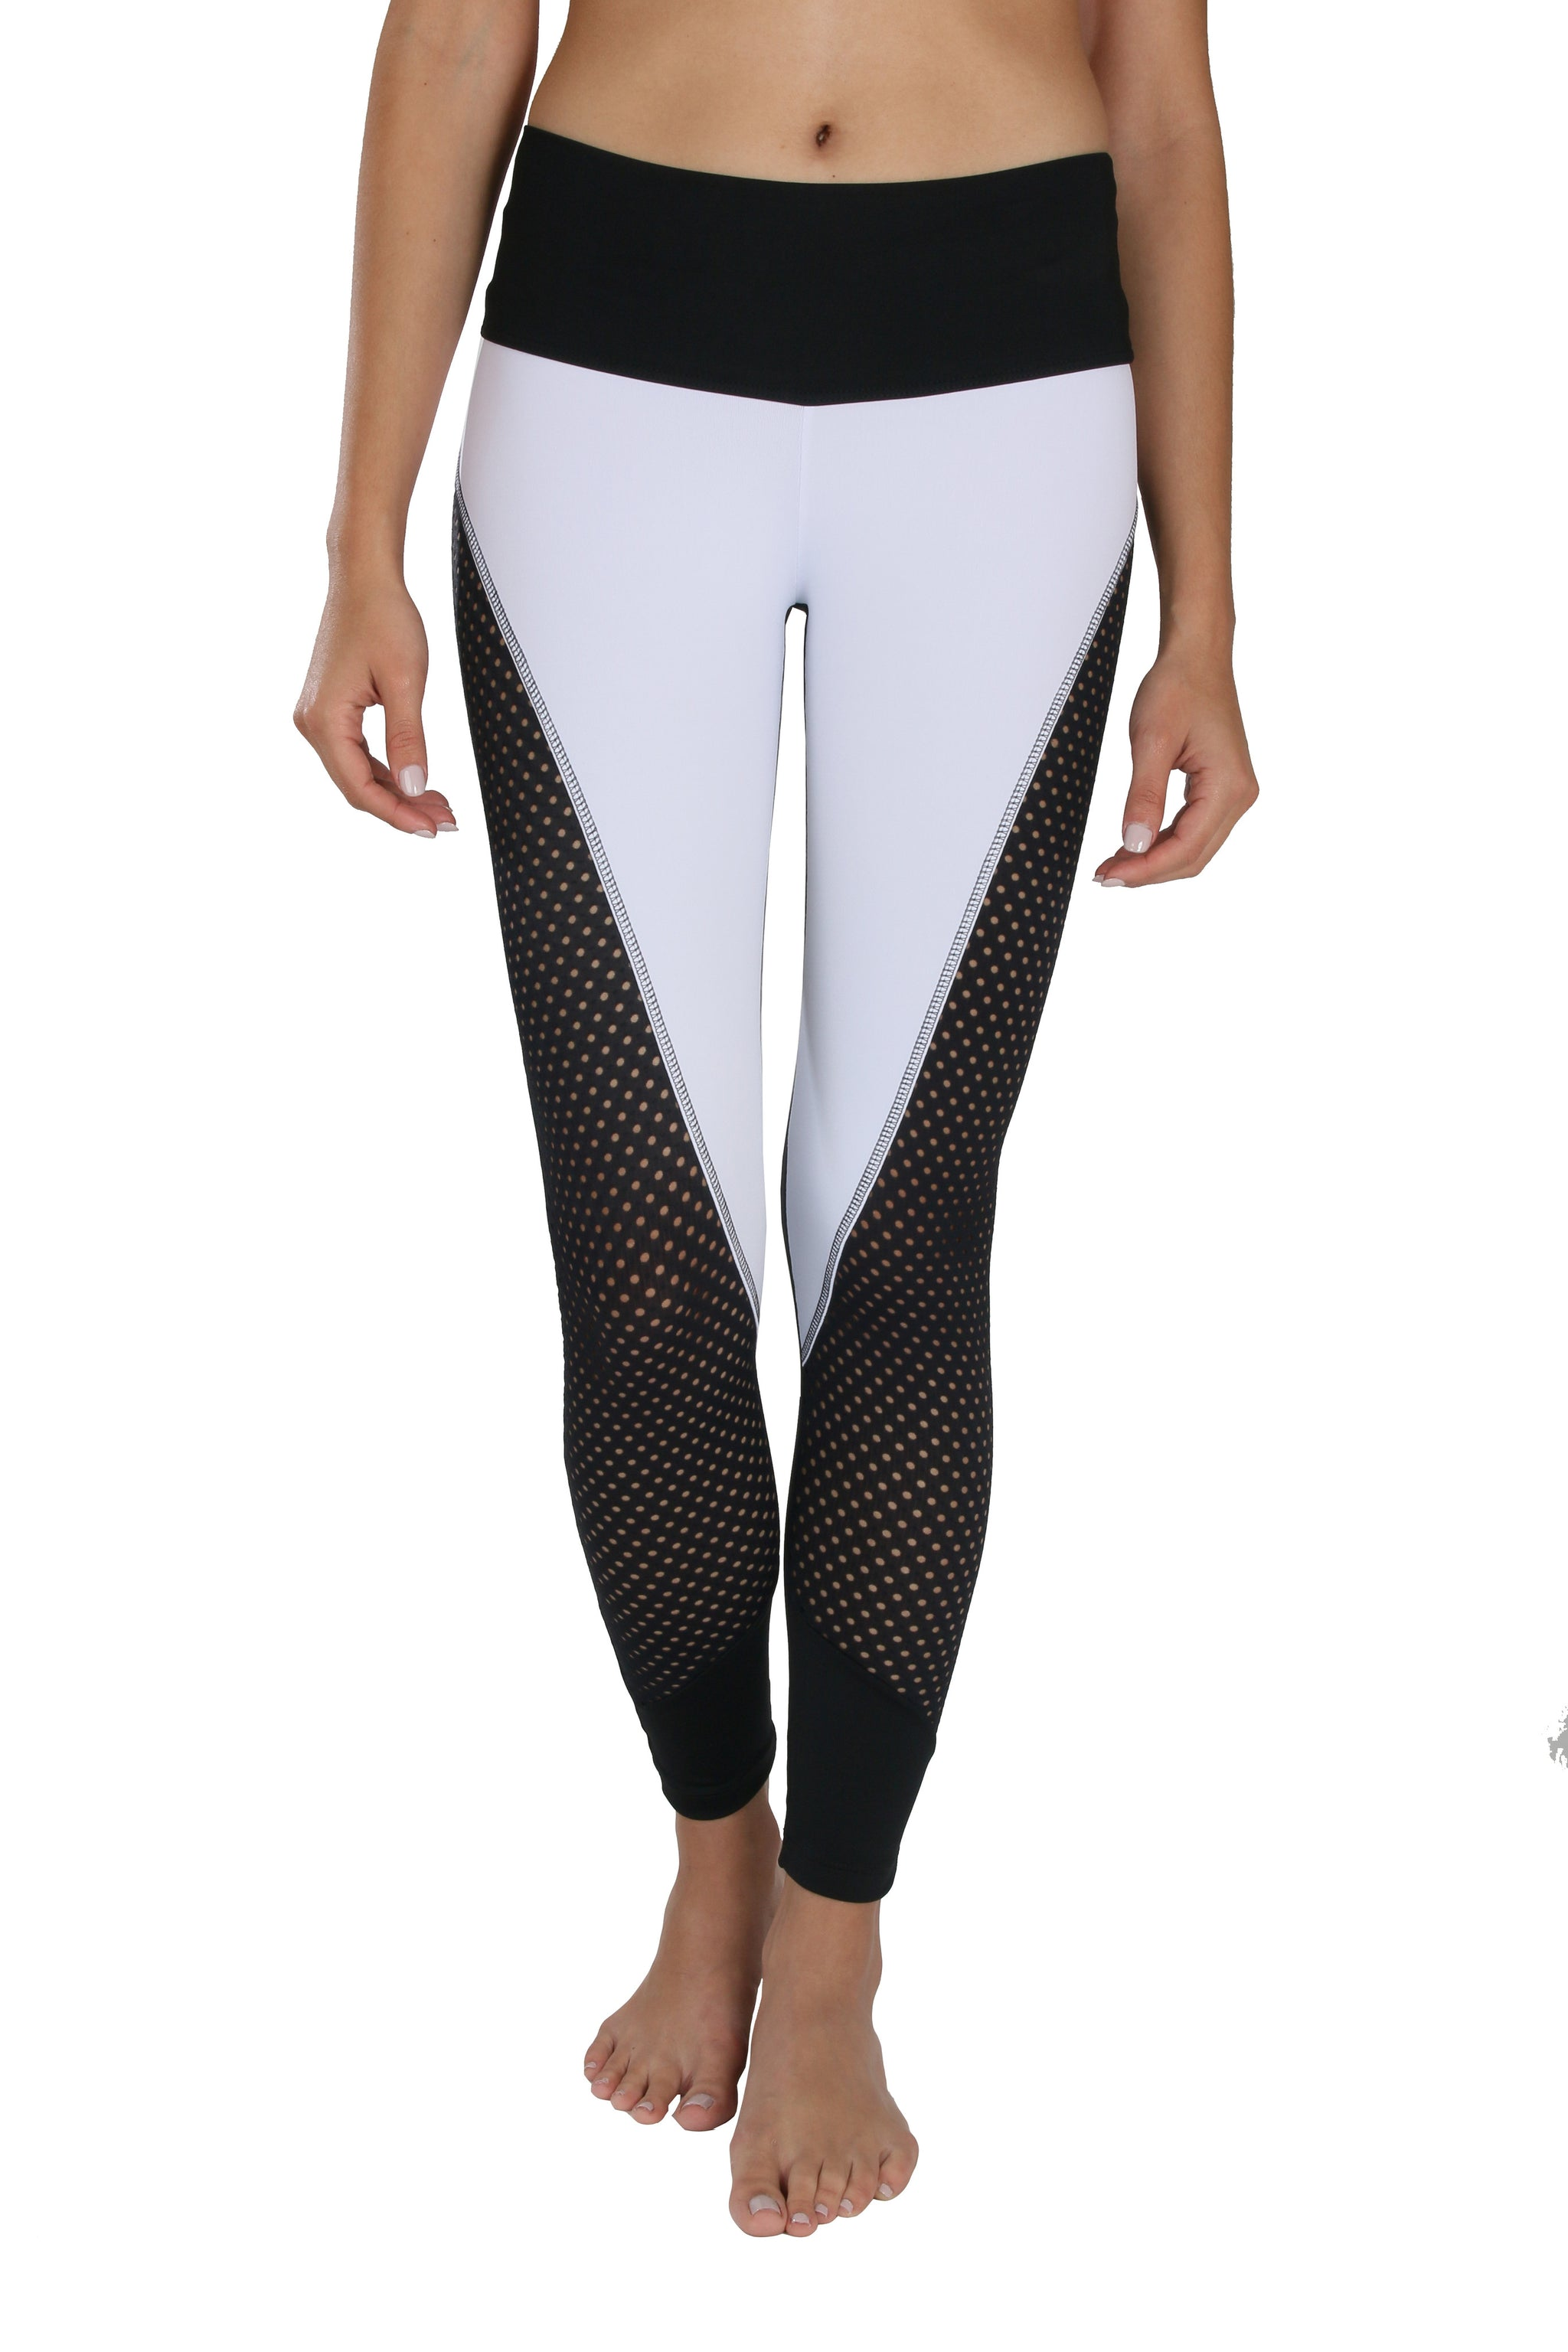 Black & White Mesh Yoga Pants | Sleek Design Leggings | Gorgeous Exercise Pants by Lavaloka